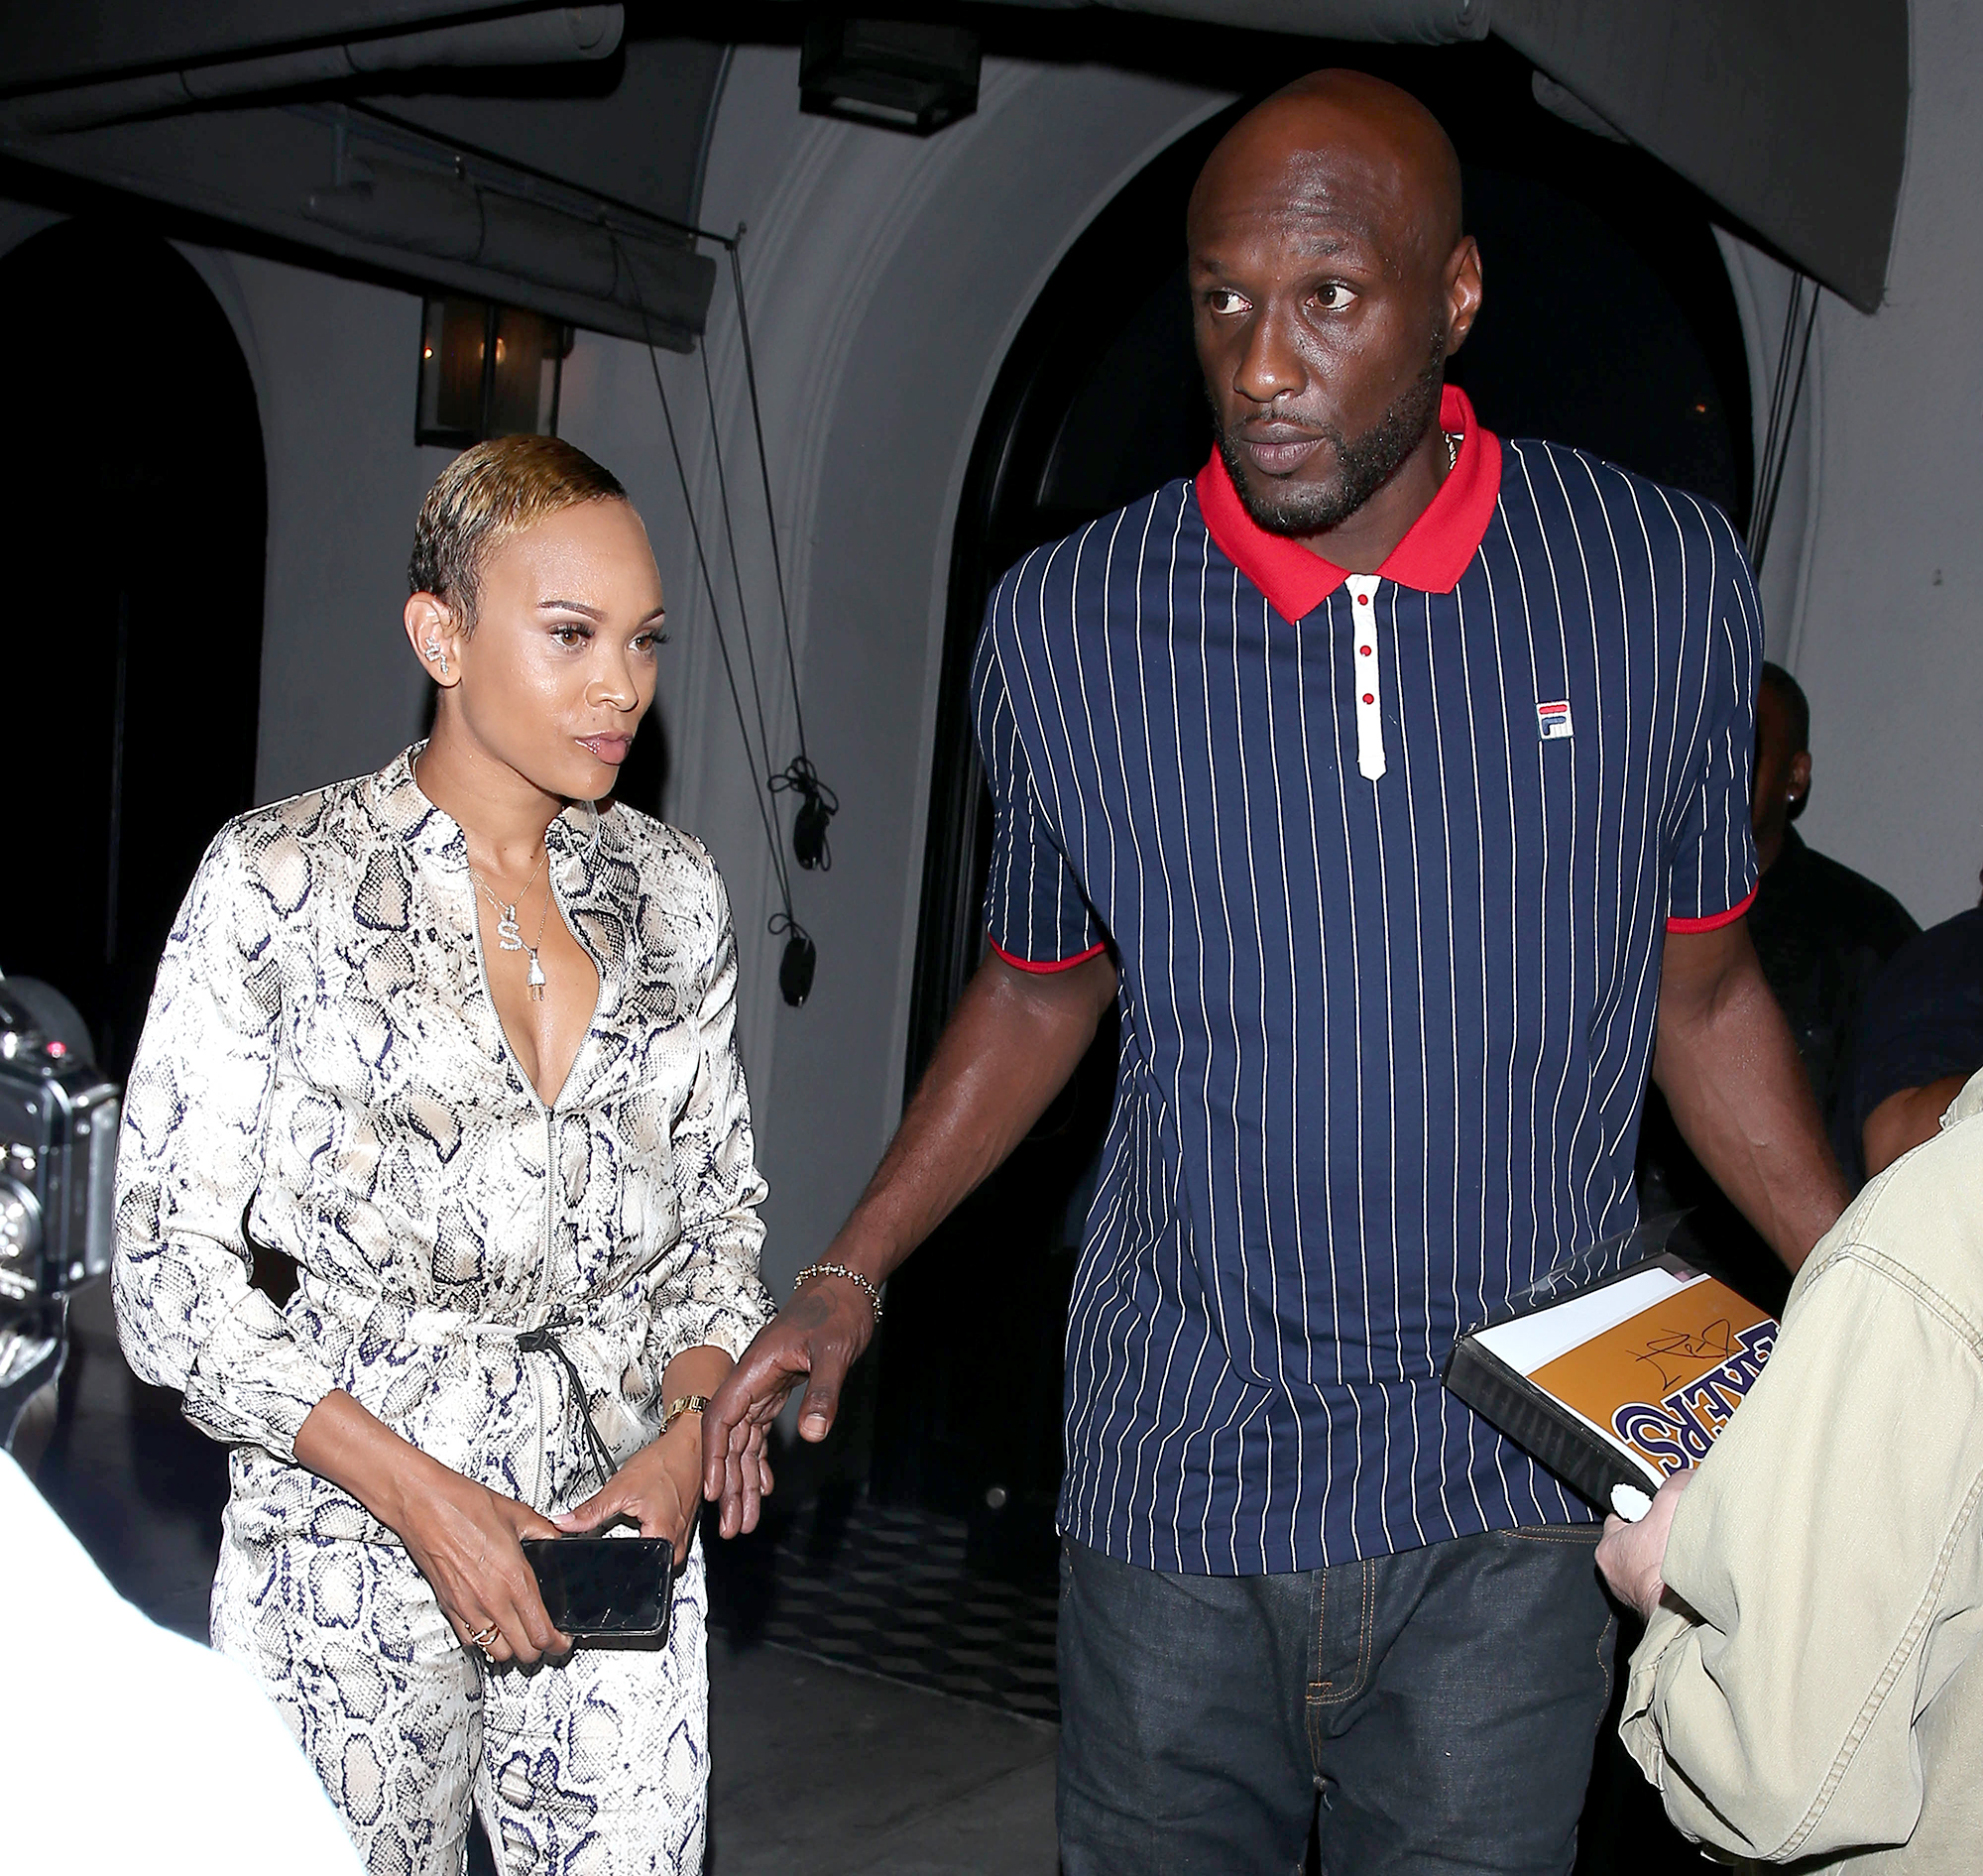 sabrina-parr-speaks-out-after-she-was-seen-arguing-with-lamar-odoms-daughter